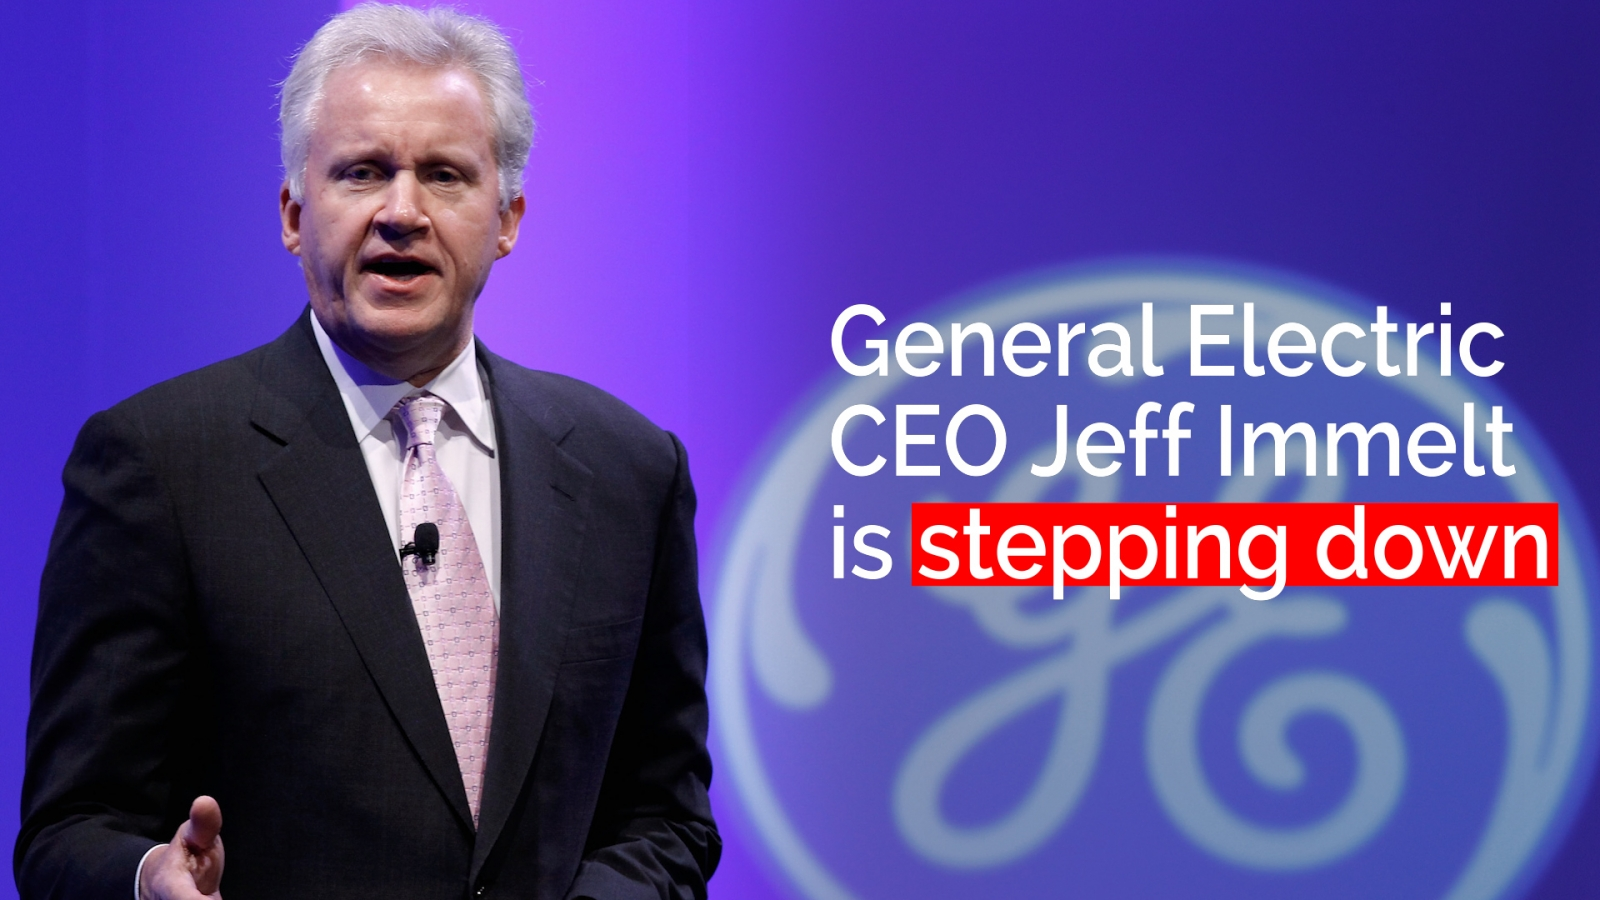 GE CEO Jeff Immelt steps down